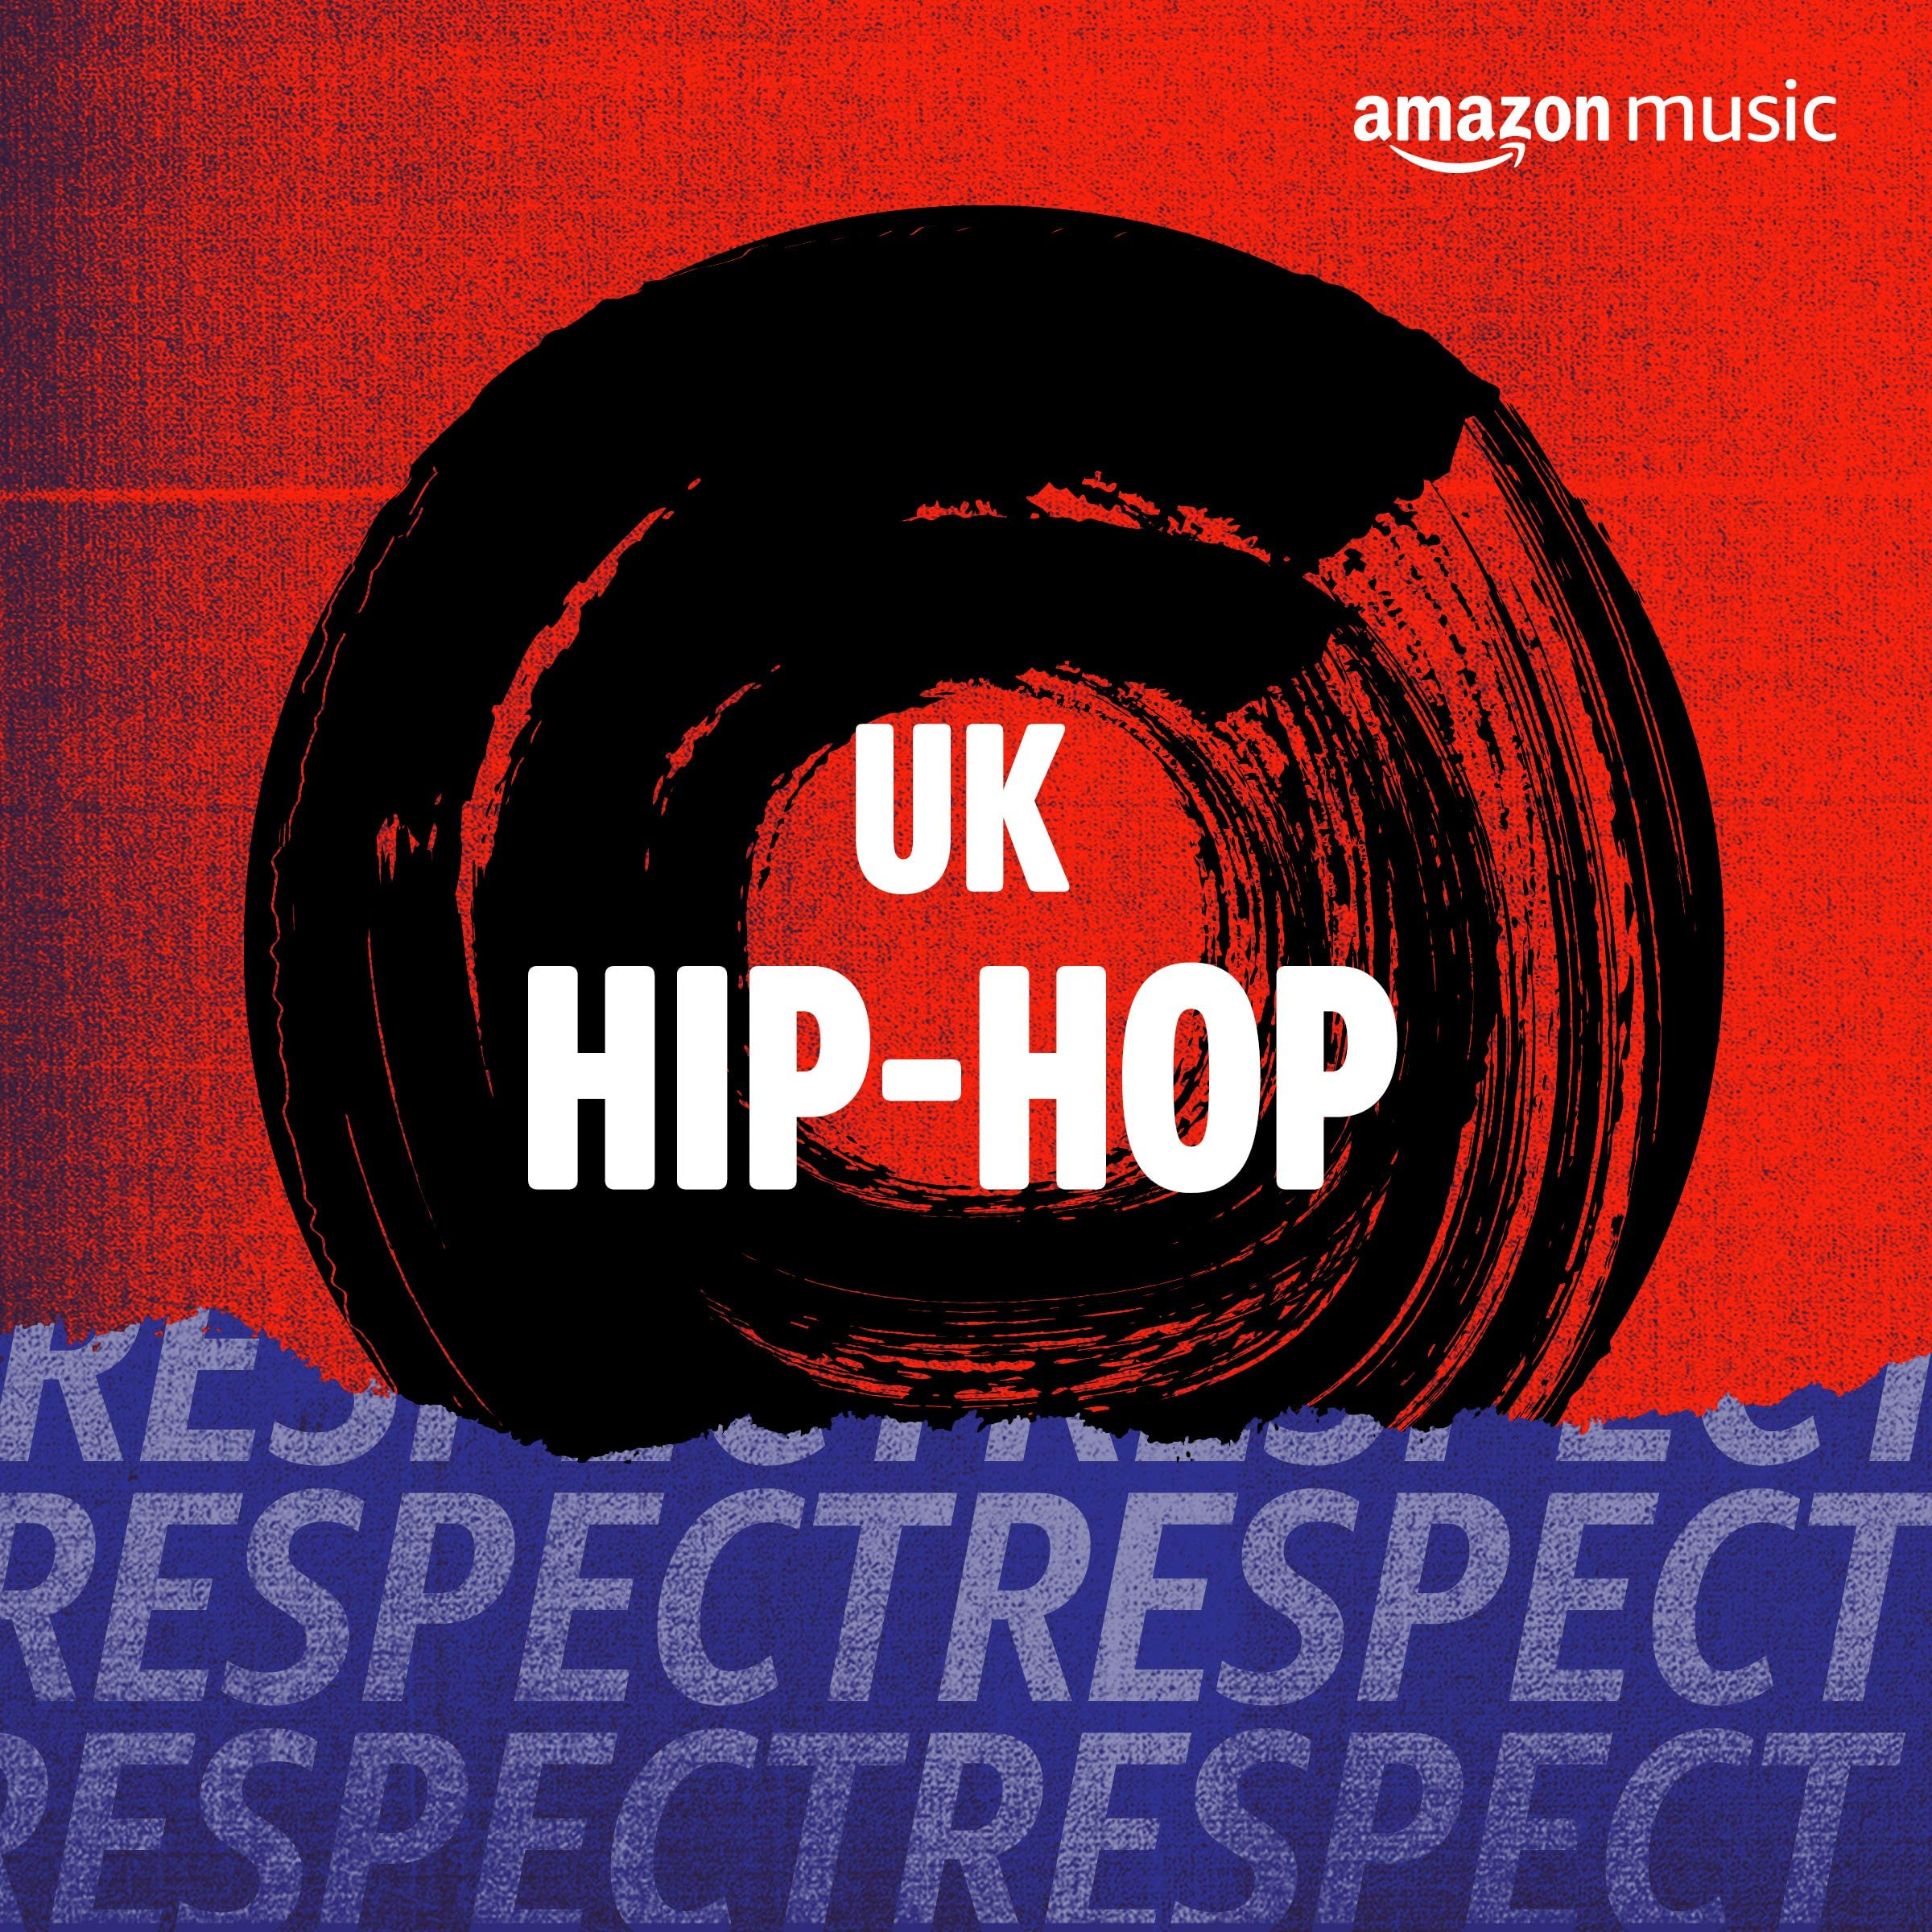 UK Hip-Hop